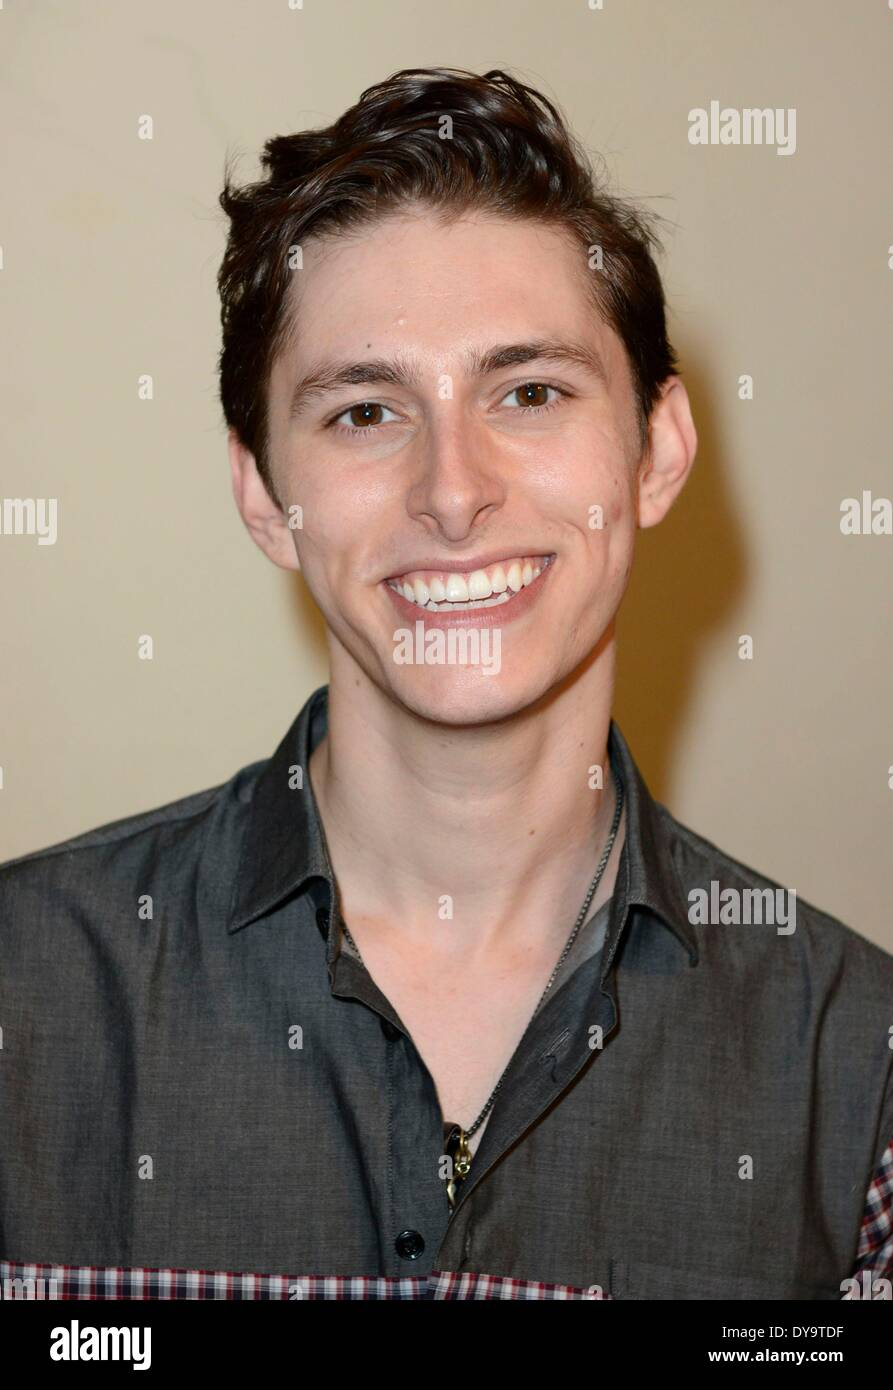 New York, NY, USA. 10th Apr, 2014. Eric Secharia inside for Press Day with MIDNIGHT RED, New York, NY April 10, 2014. Credit:  Derek Storm/Everett Collection/Alamy Live News - Stock Image